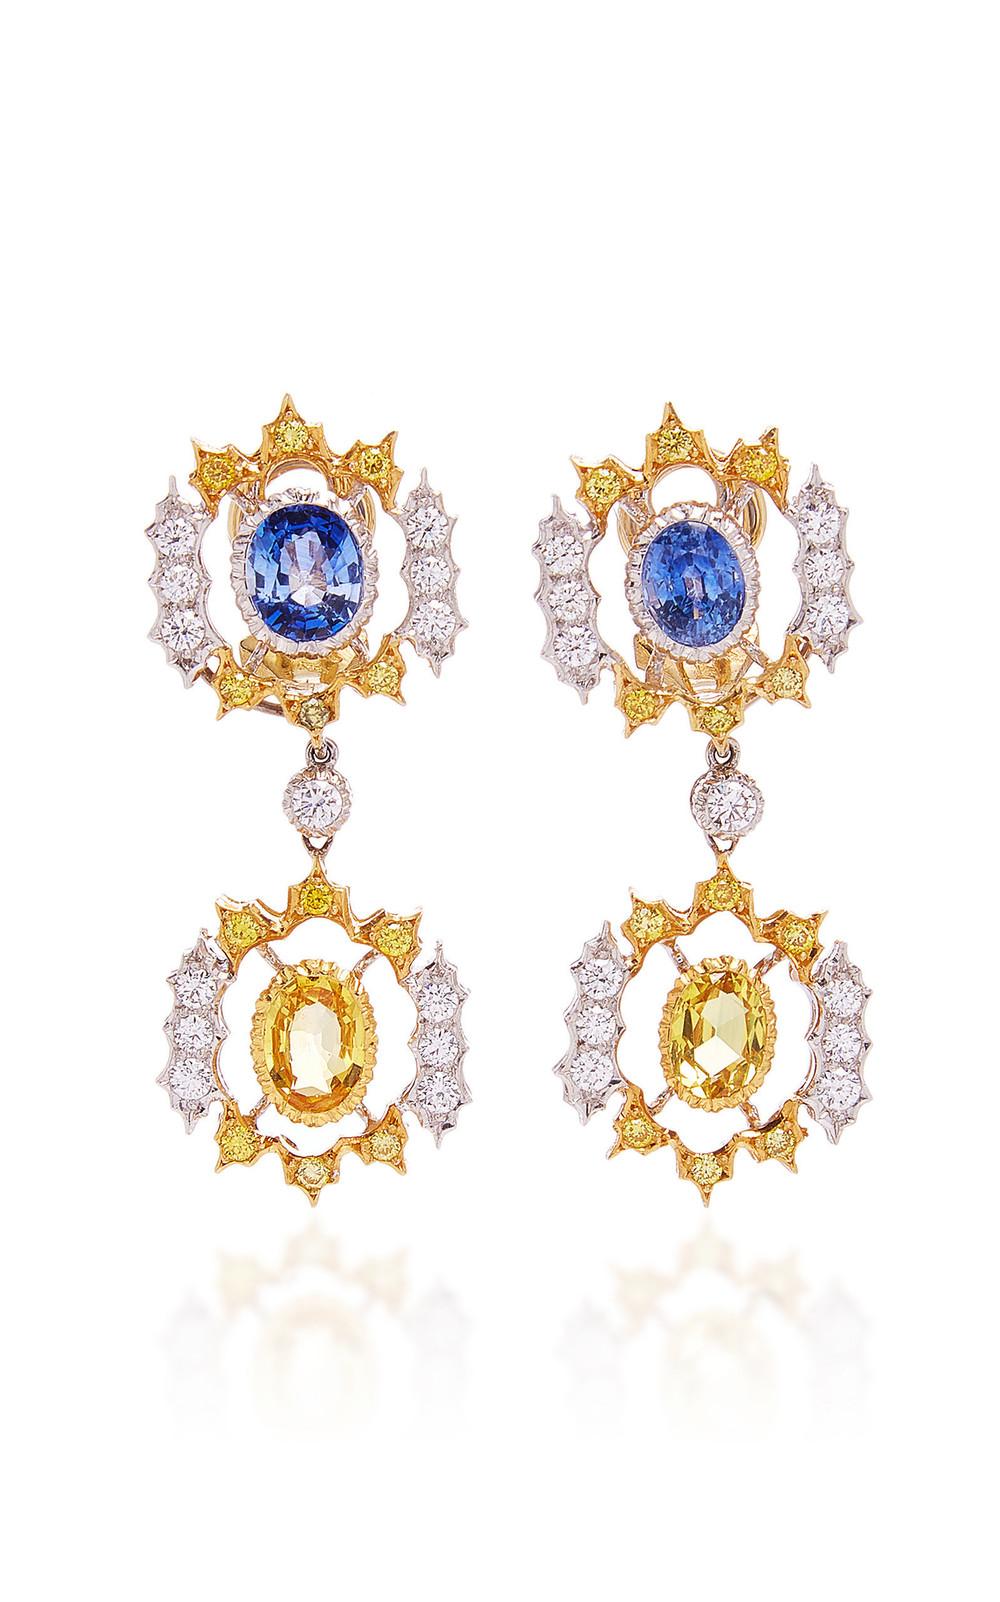 Buccellati Unica Pendant Earrings in multi